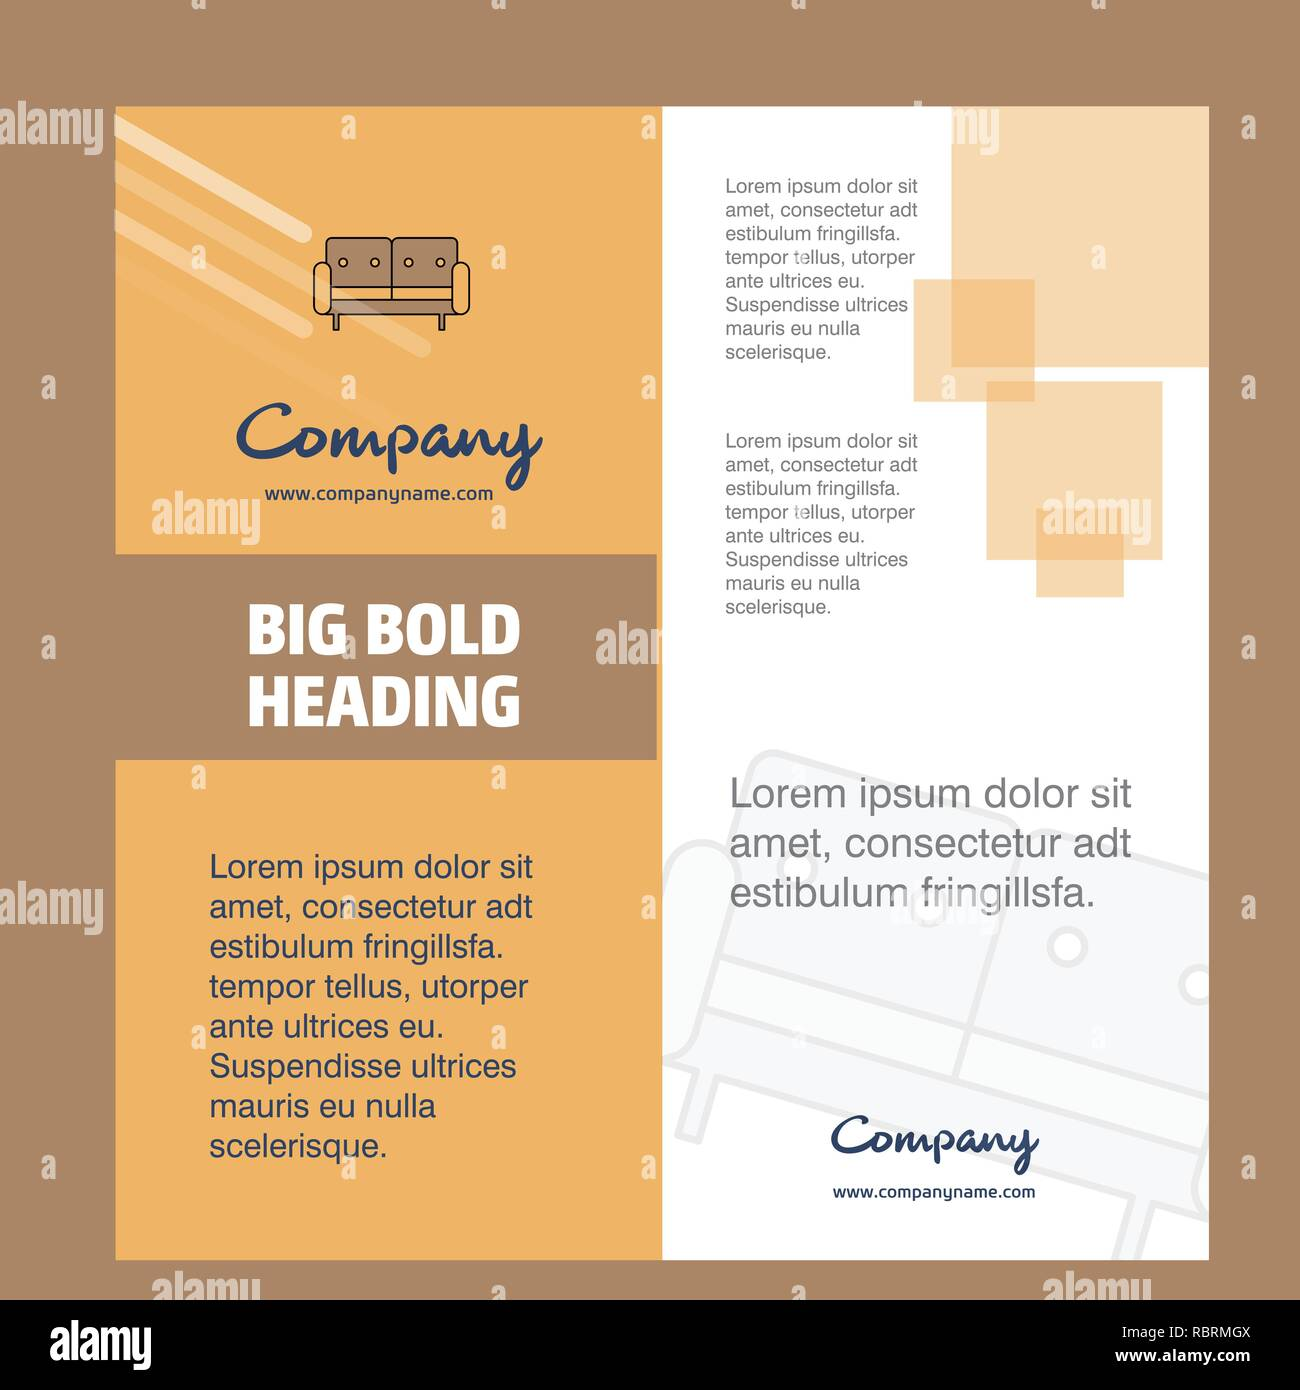 Couch Company Brochure Title Page Design  Company Profile  Annual Report  Presentations  Leaflet